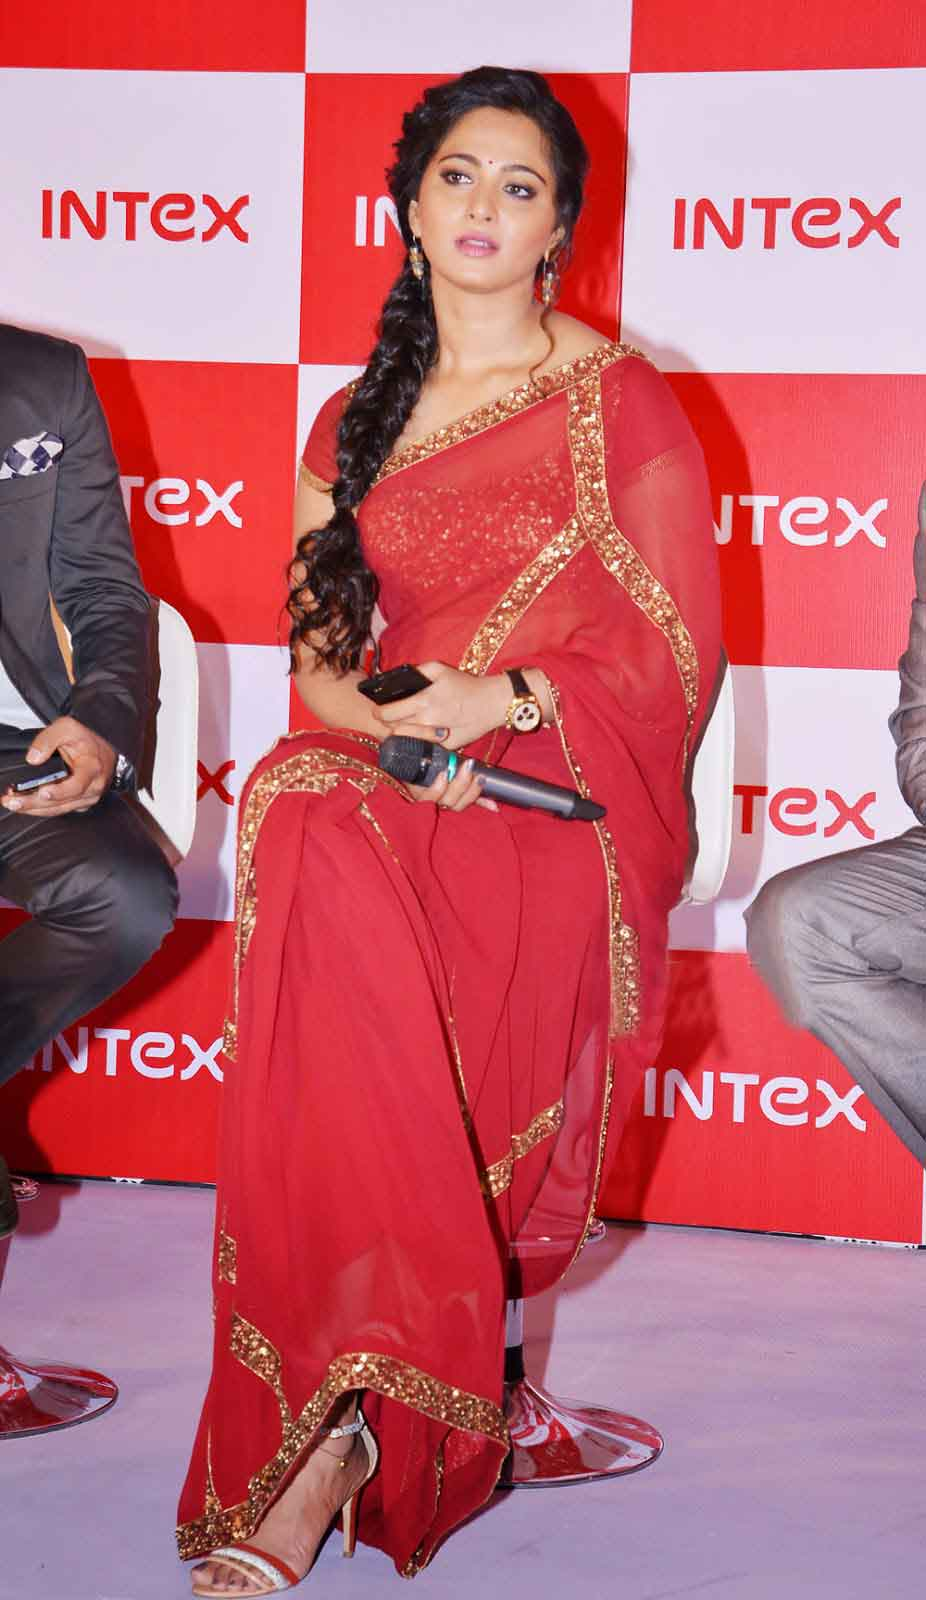 anushka shetty biography  real name  age  family profile  height  weight  movies etc